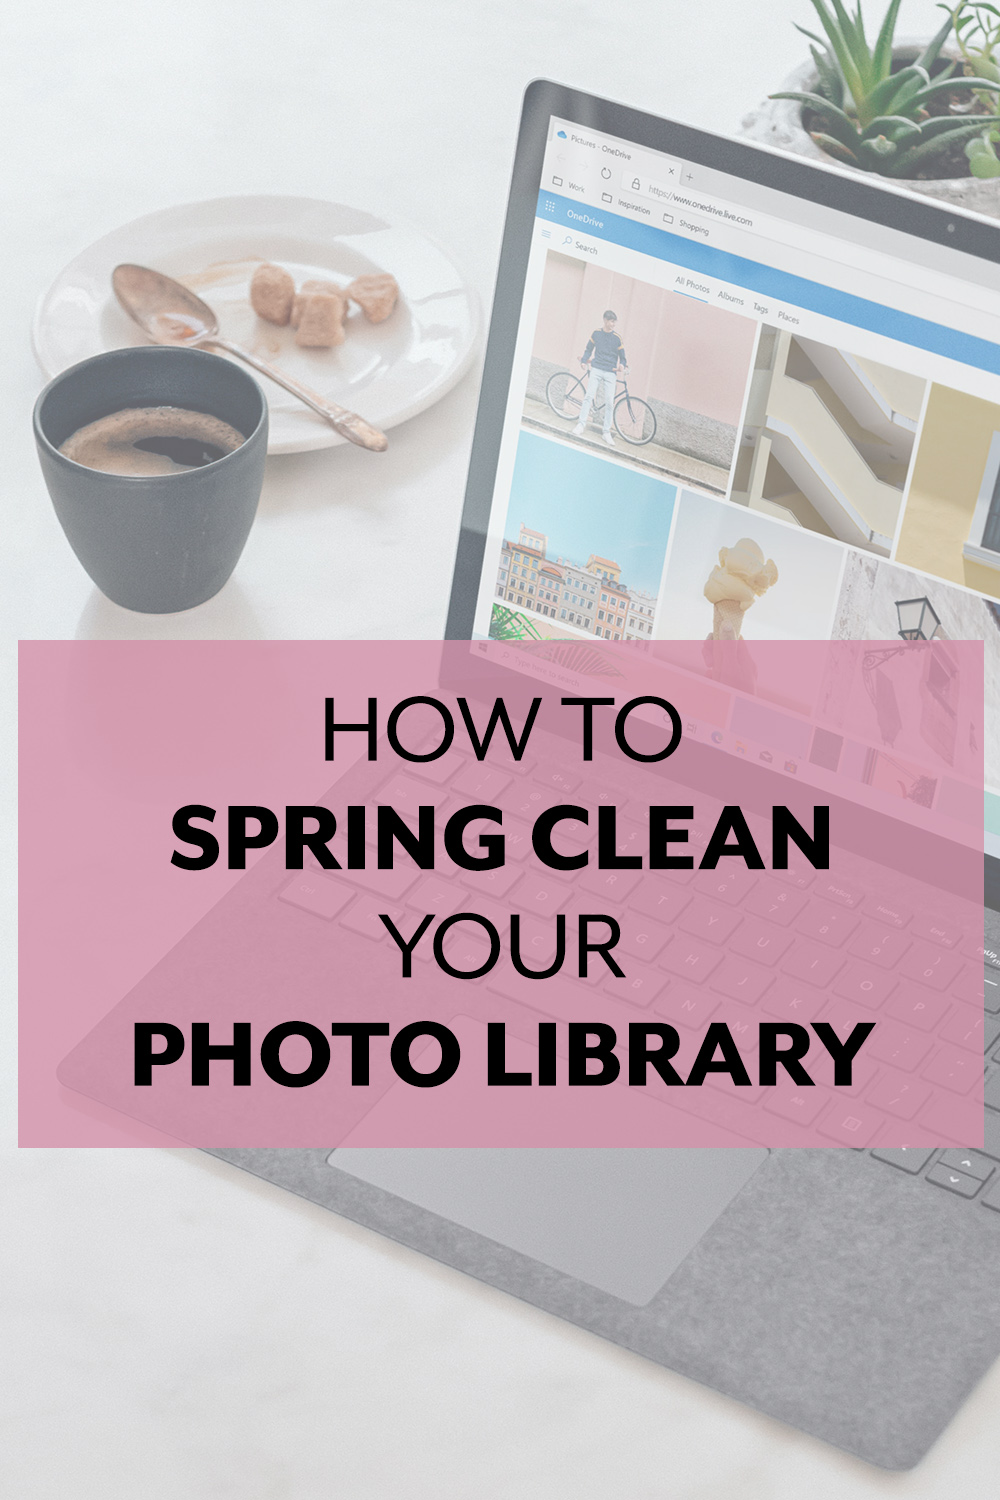 Give your digital photo library a spring cleaning as well!